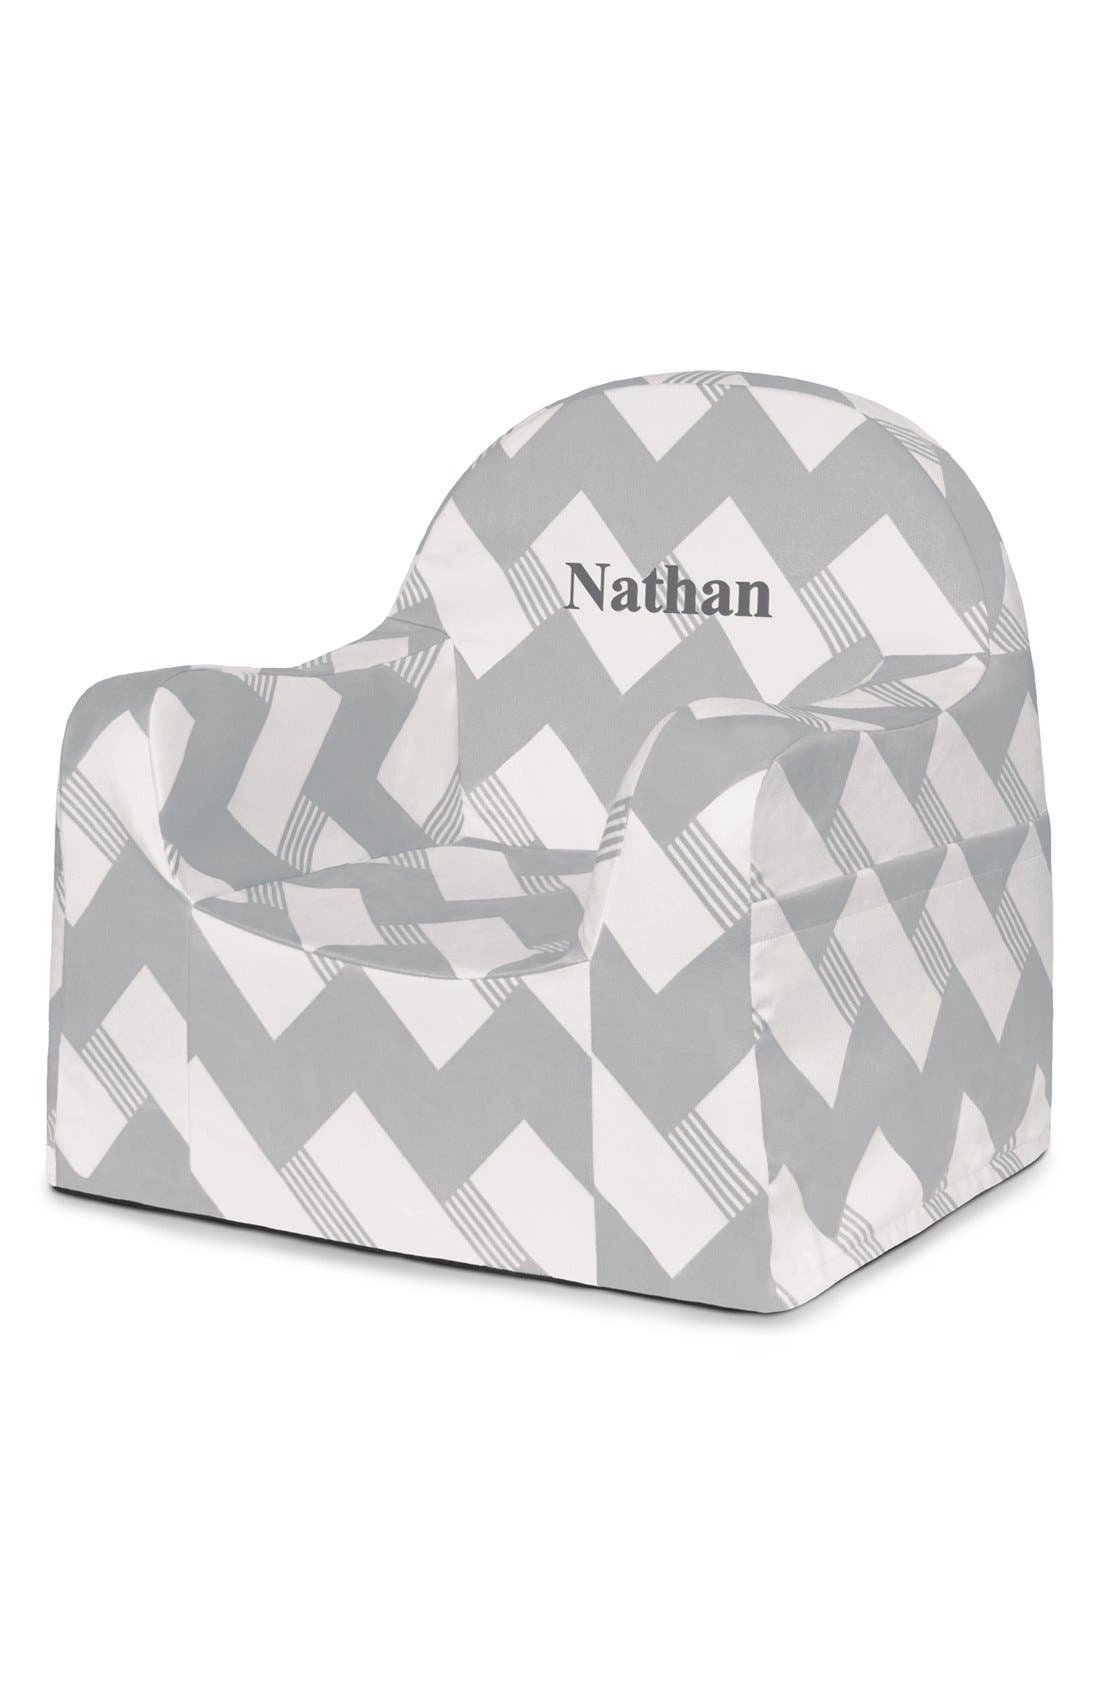 'Personalized Little Reader' Chair,                             Main thumbnail 1, color,                             020